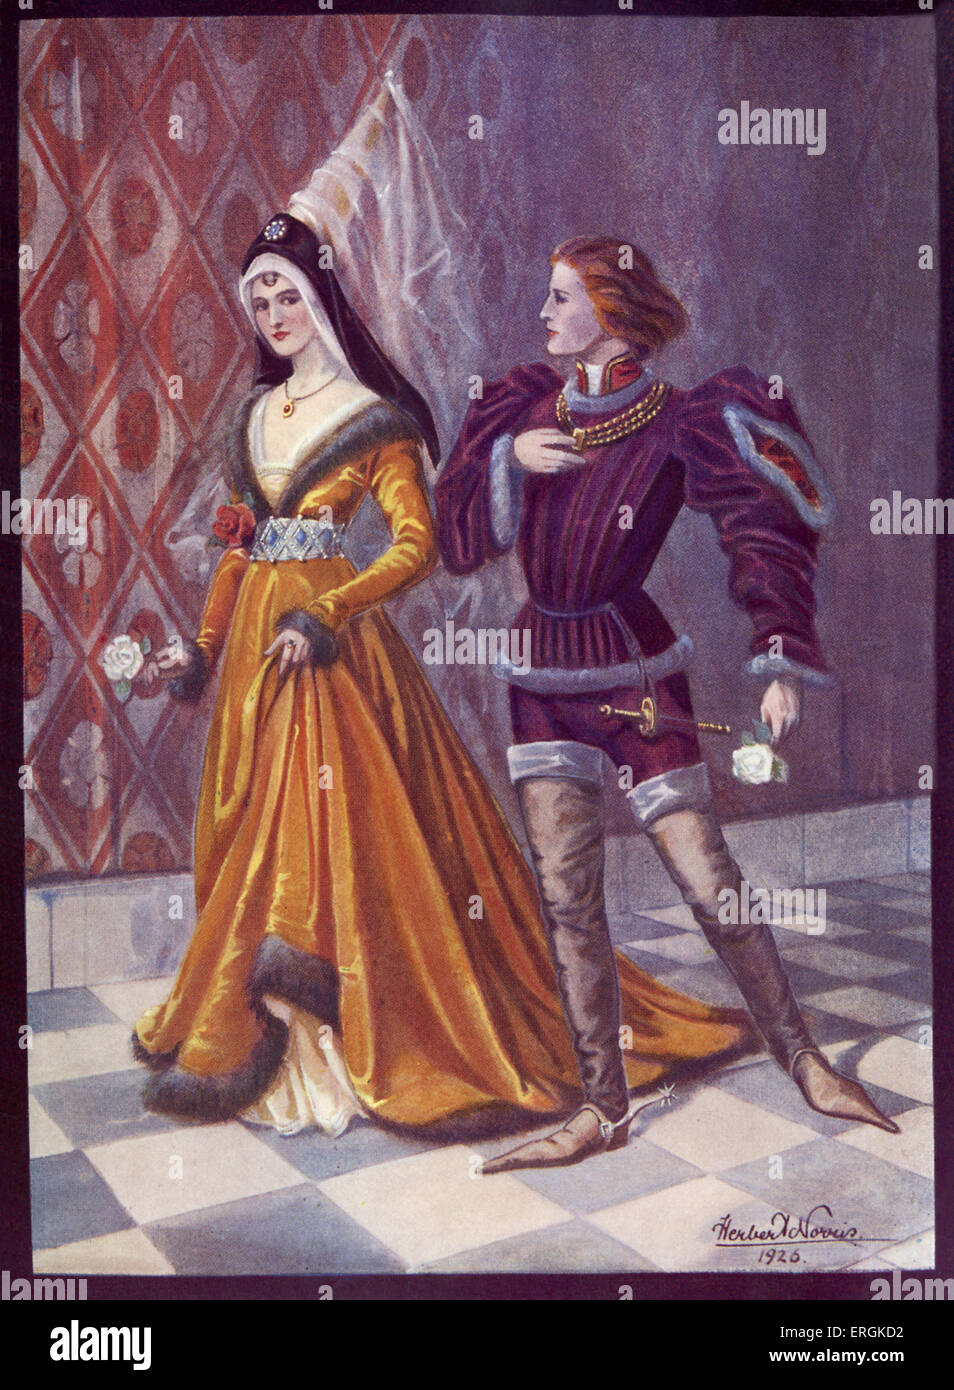 A nobleman and lady, mid 15th century, likely the period of Edward IV (1442-1483). This scene appears to depict - Stock Image